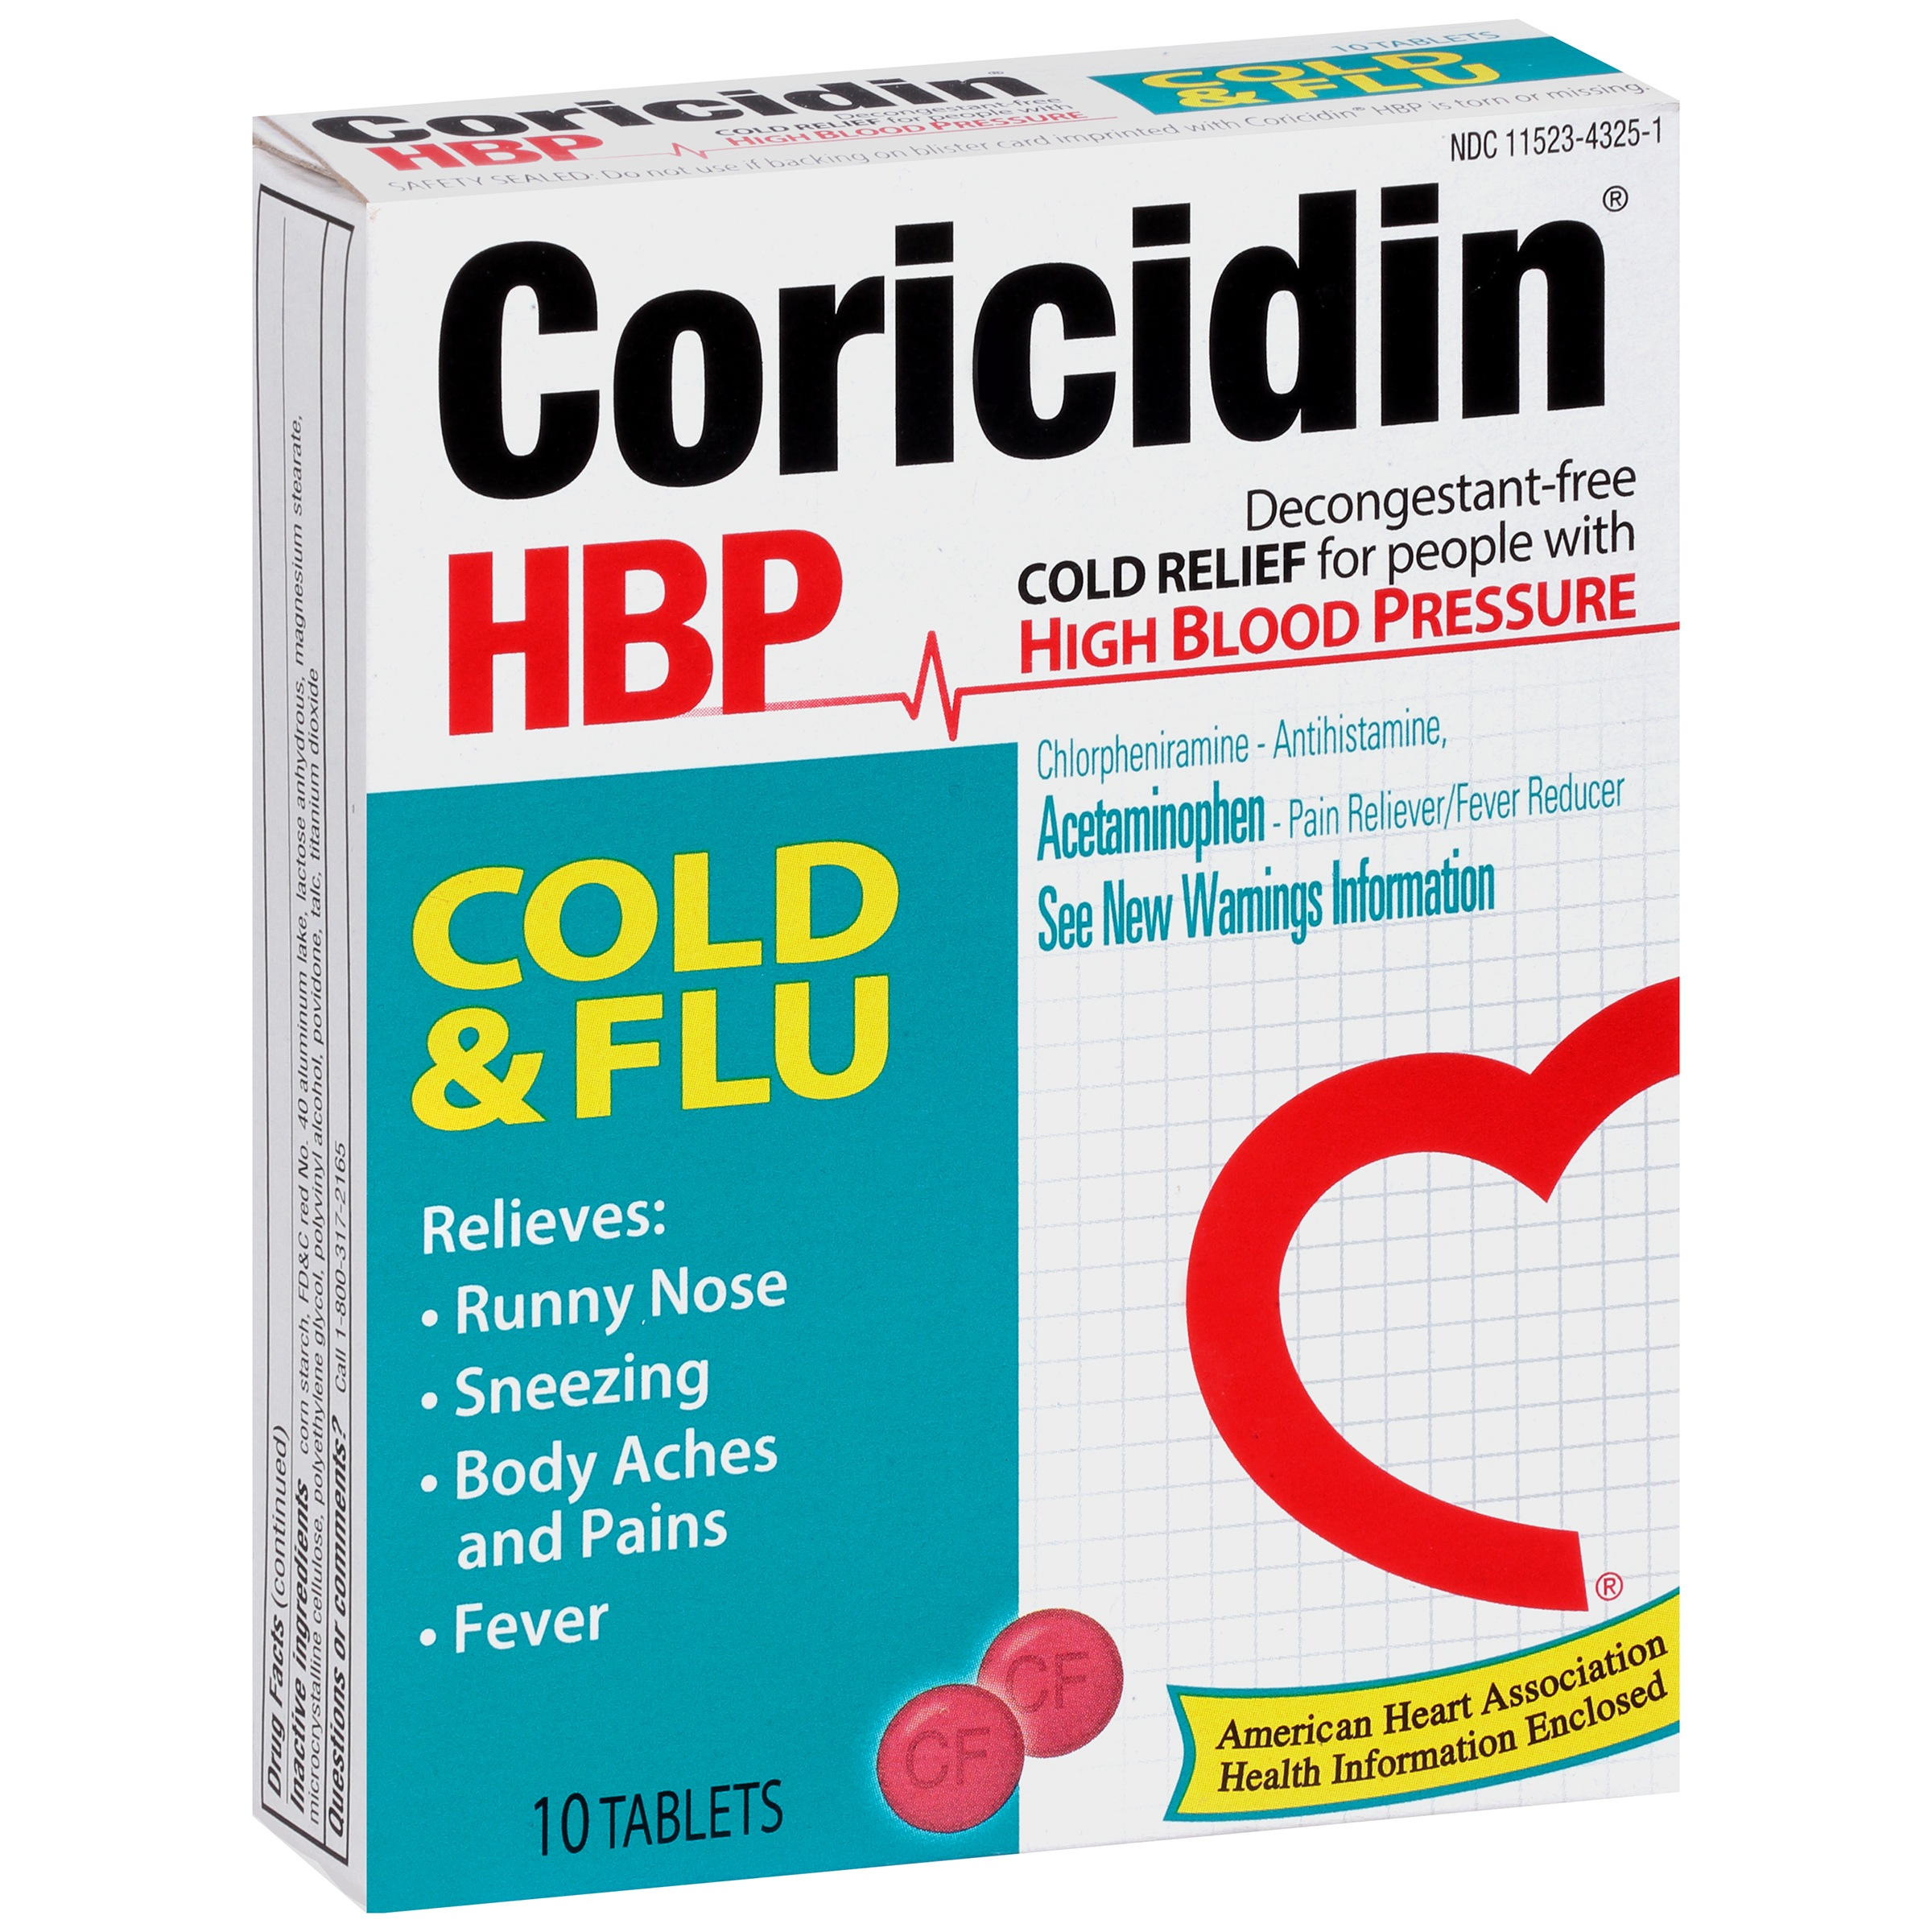 Coricidin® HBP Cold & Flu Cold Relief Tablets 10 ct Box